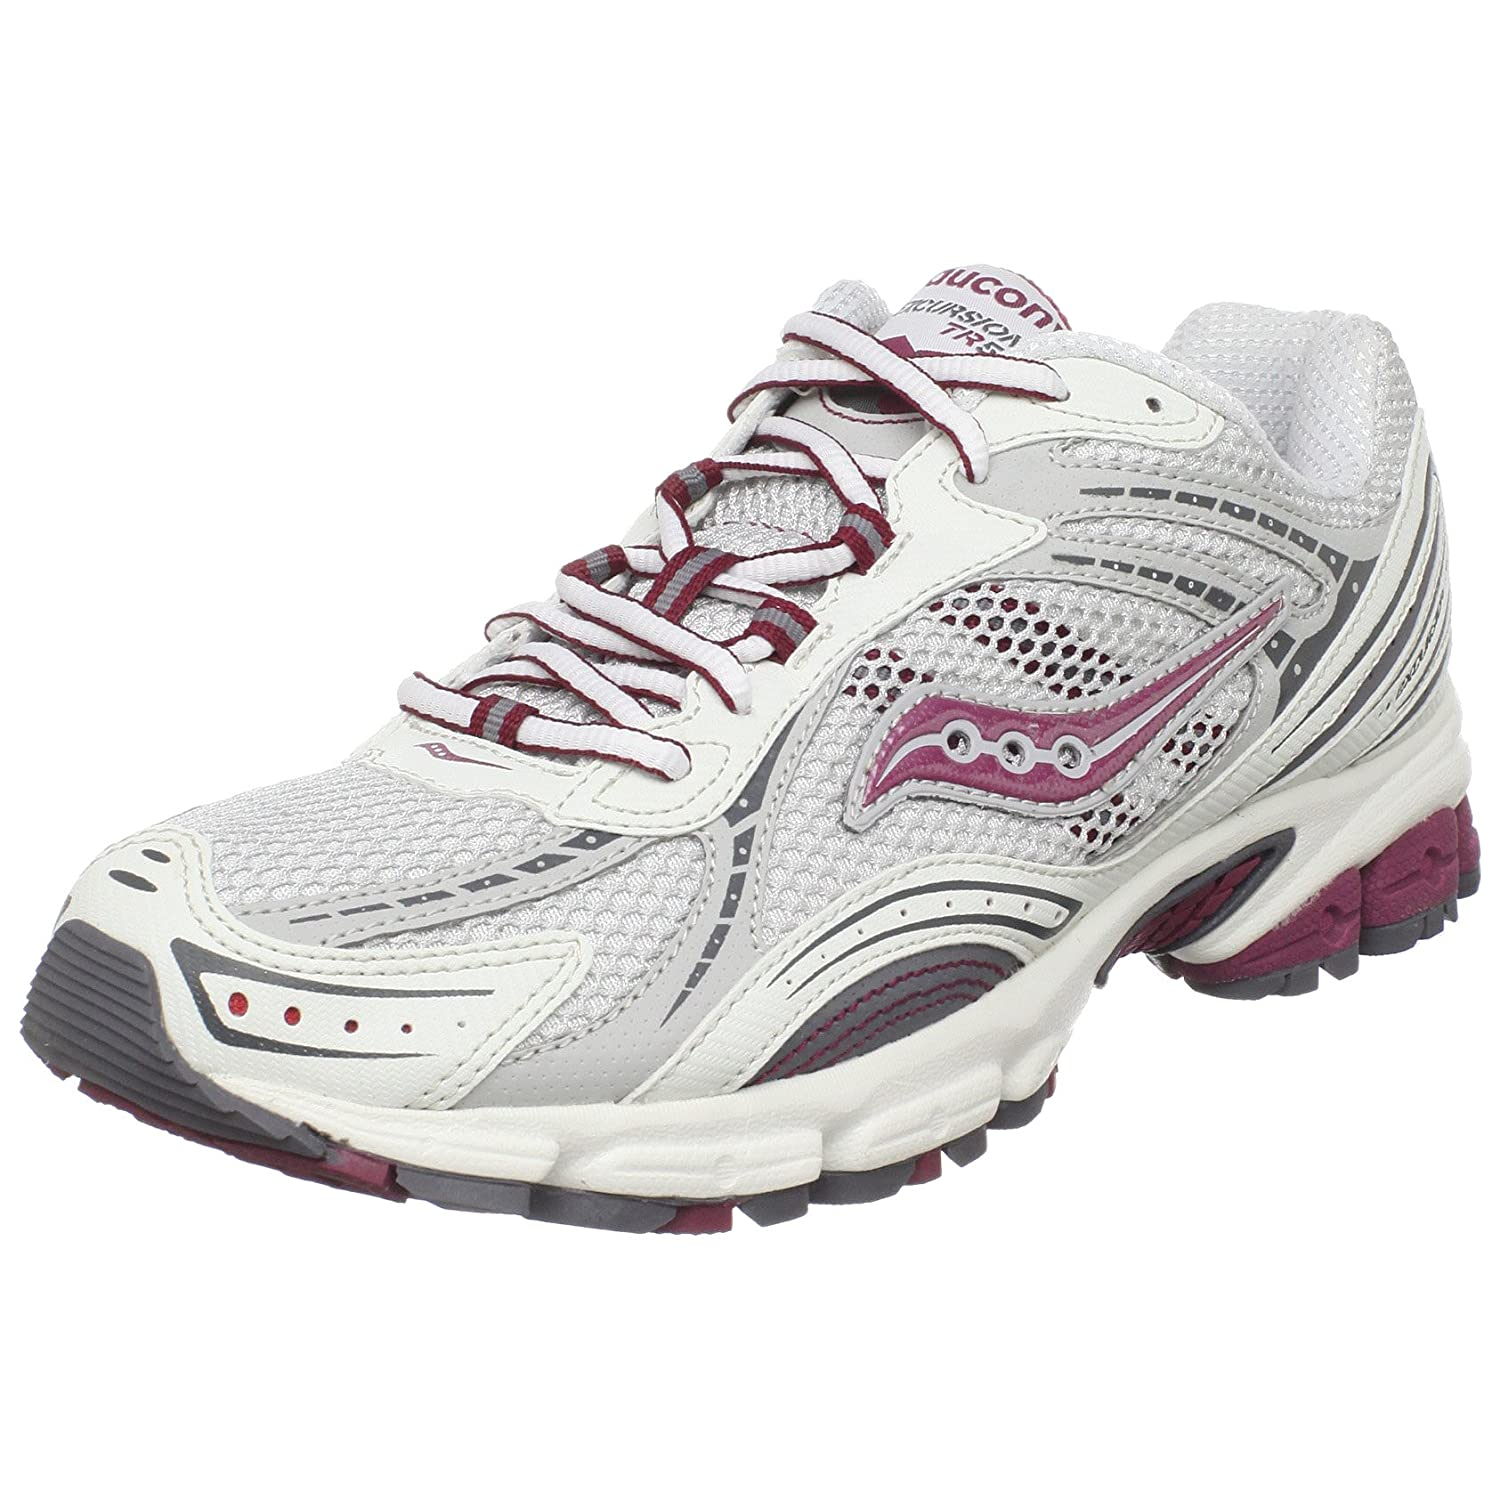 saucony excursion tr9 women's running shoes